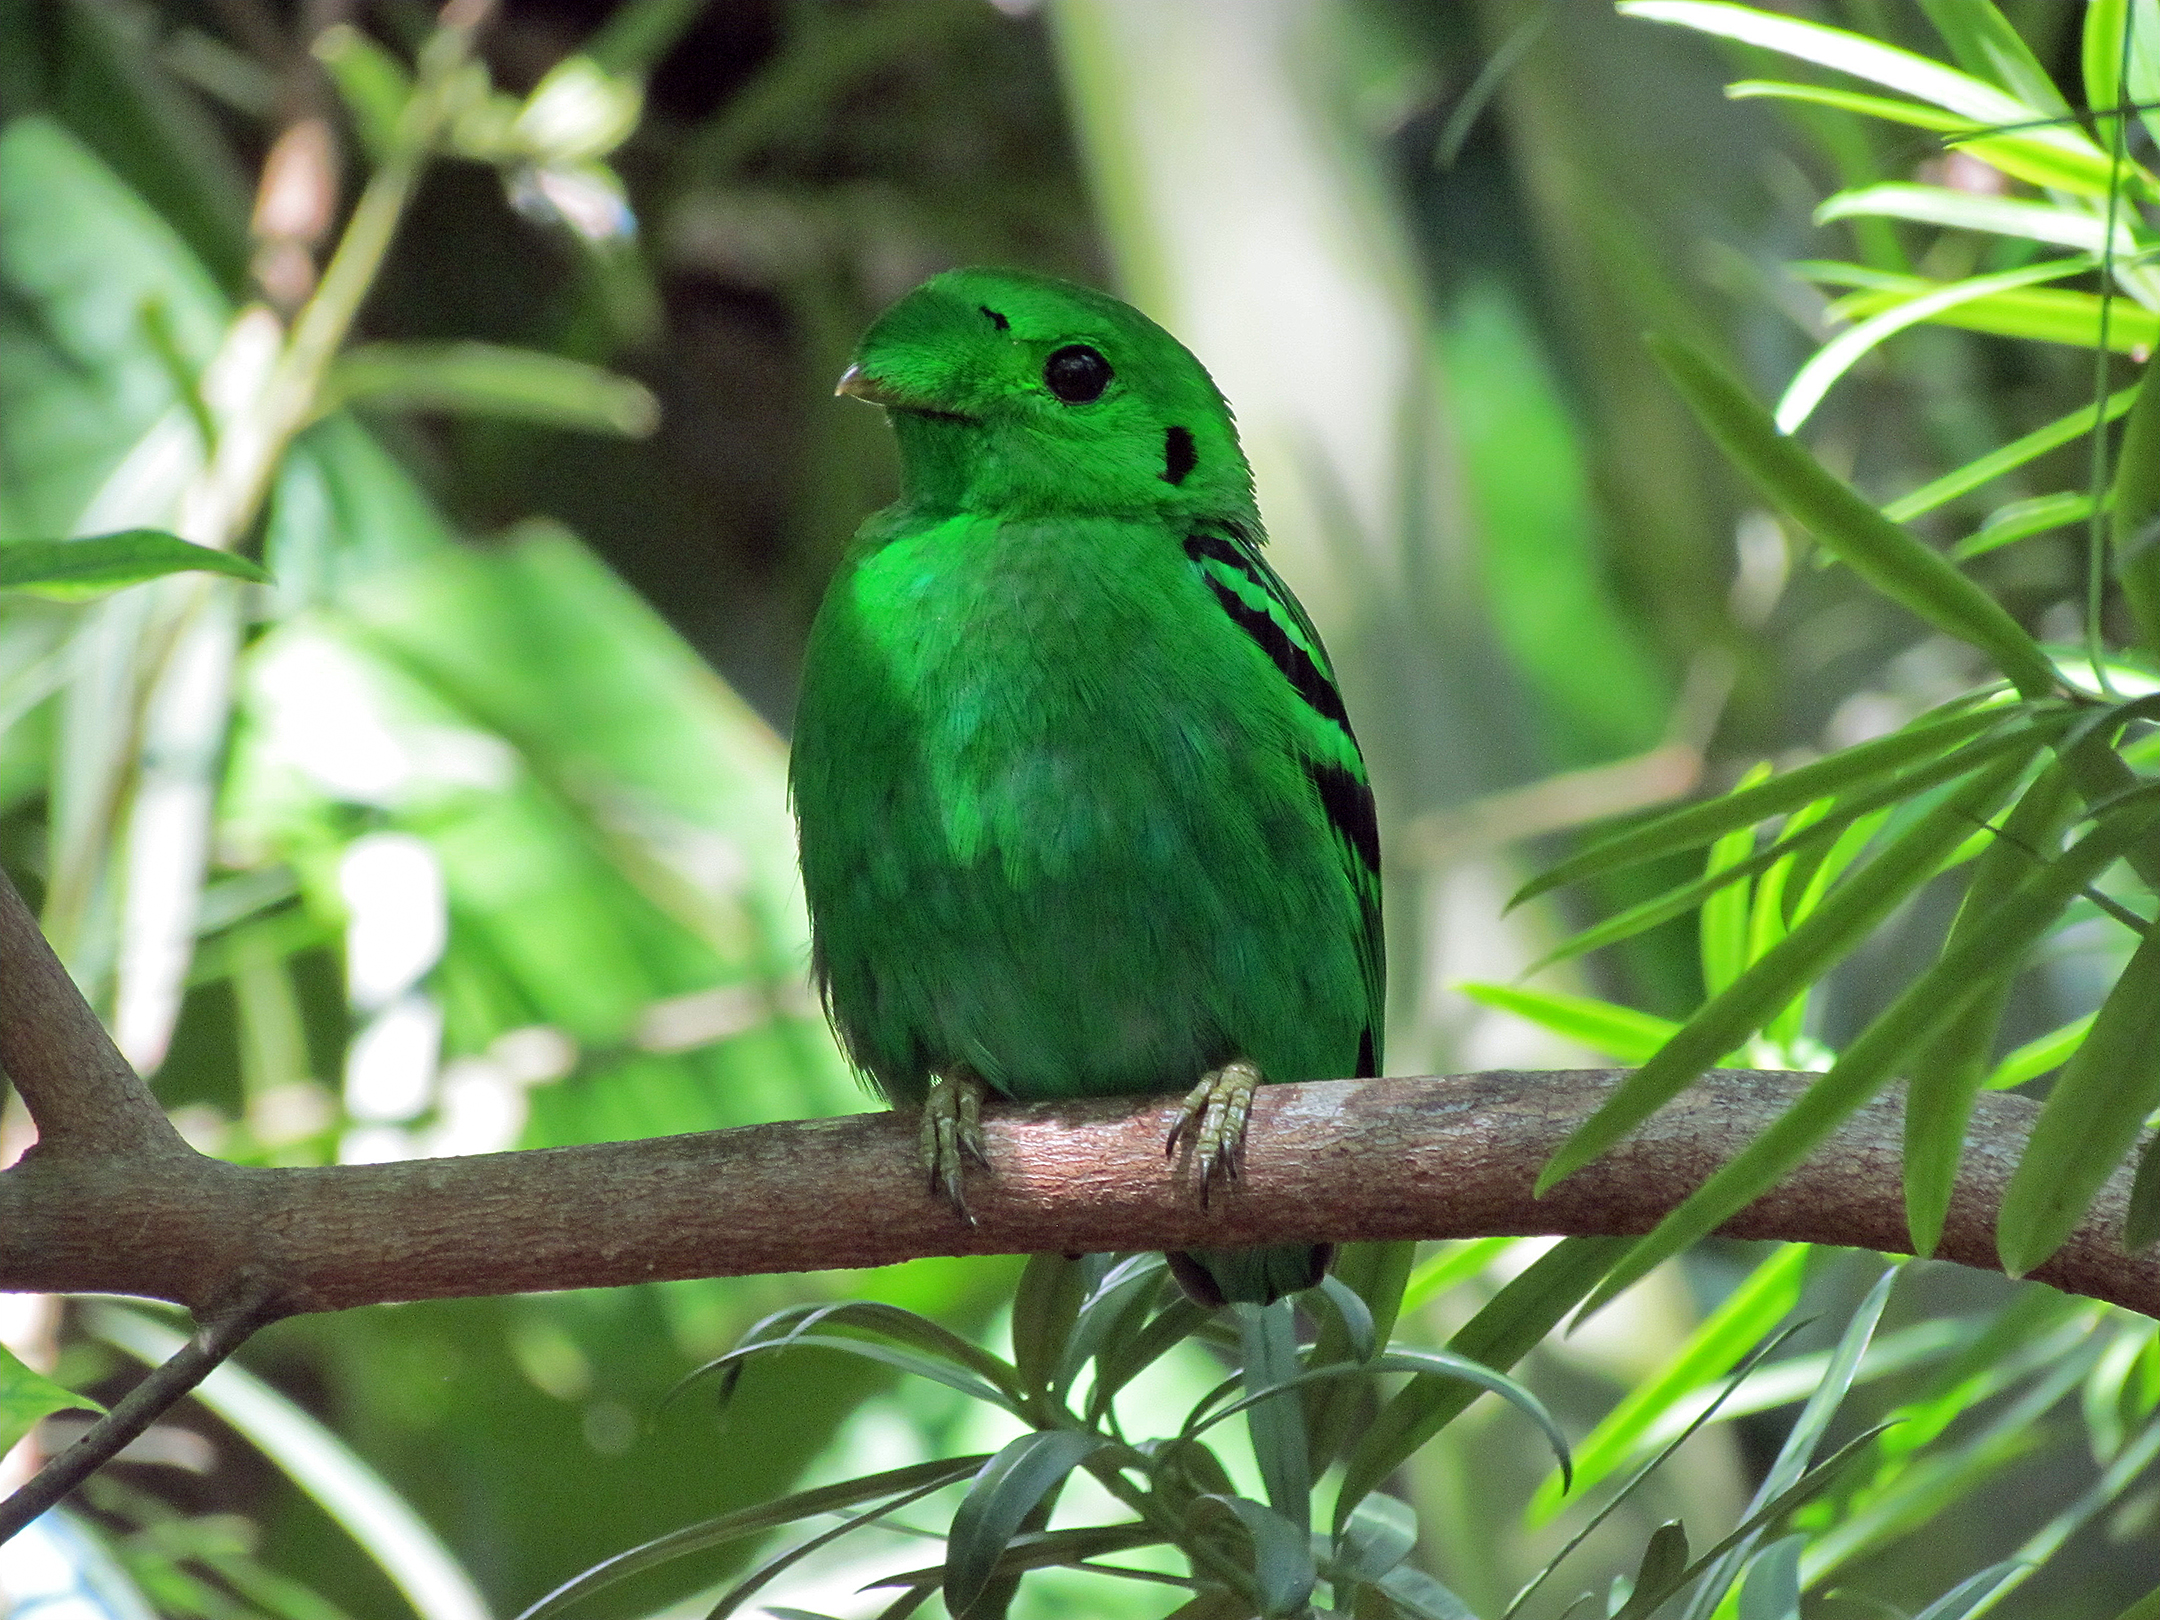 https://upload.wikimedia.org/wikipedia/commons/8/8b/Lesser_green_broadbill_%287150956749%29.jpg